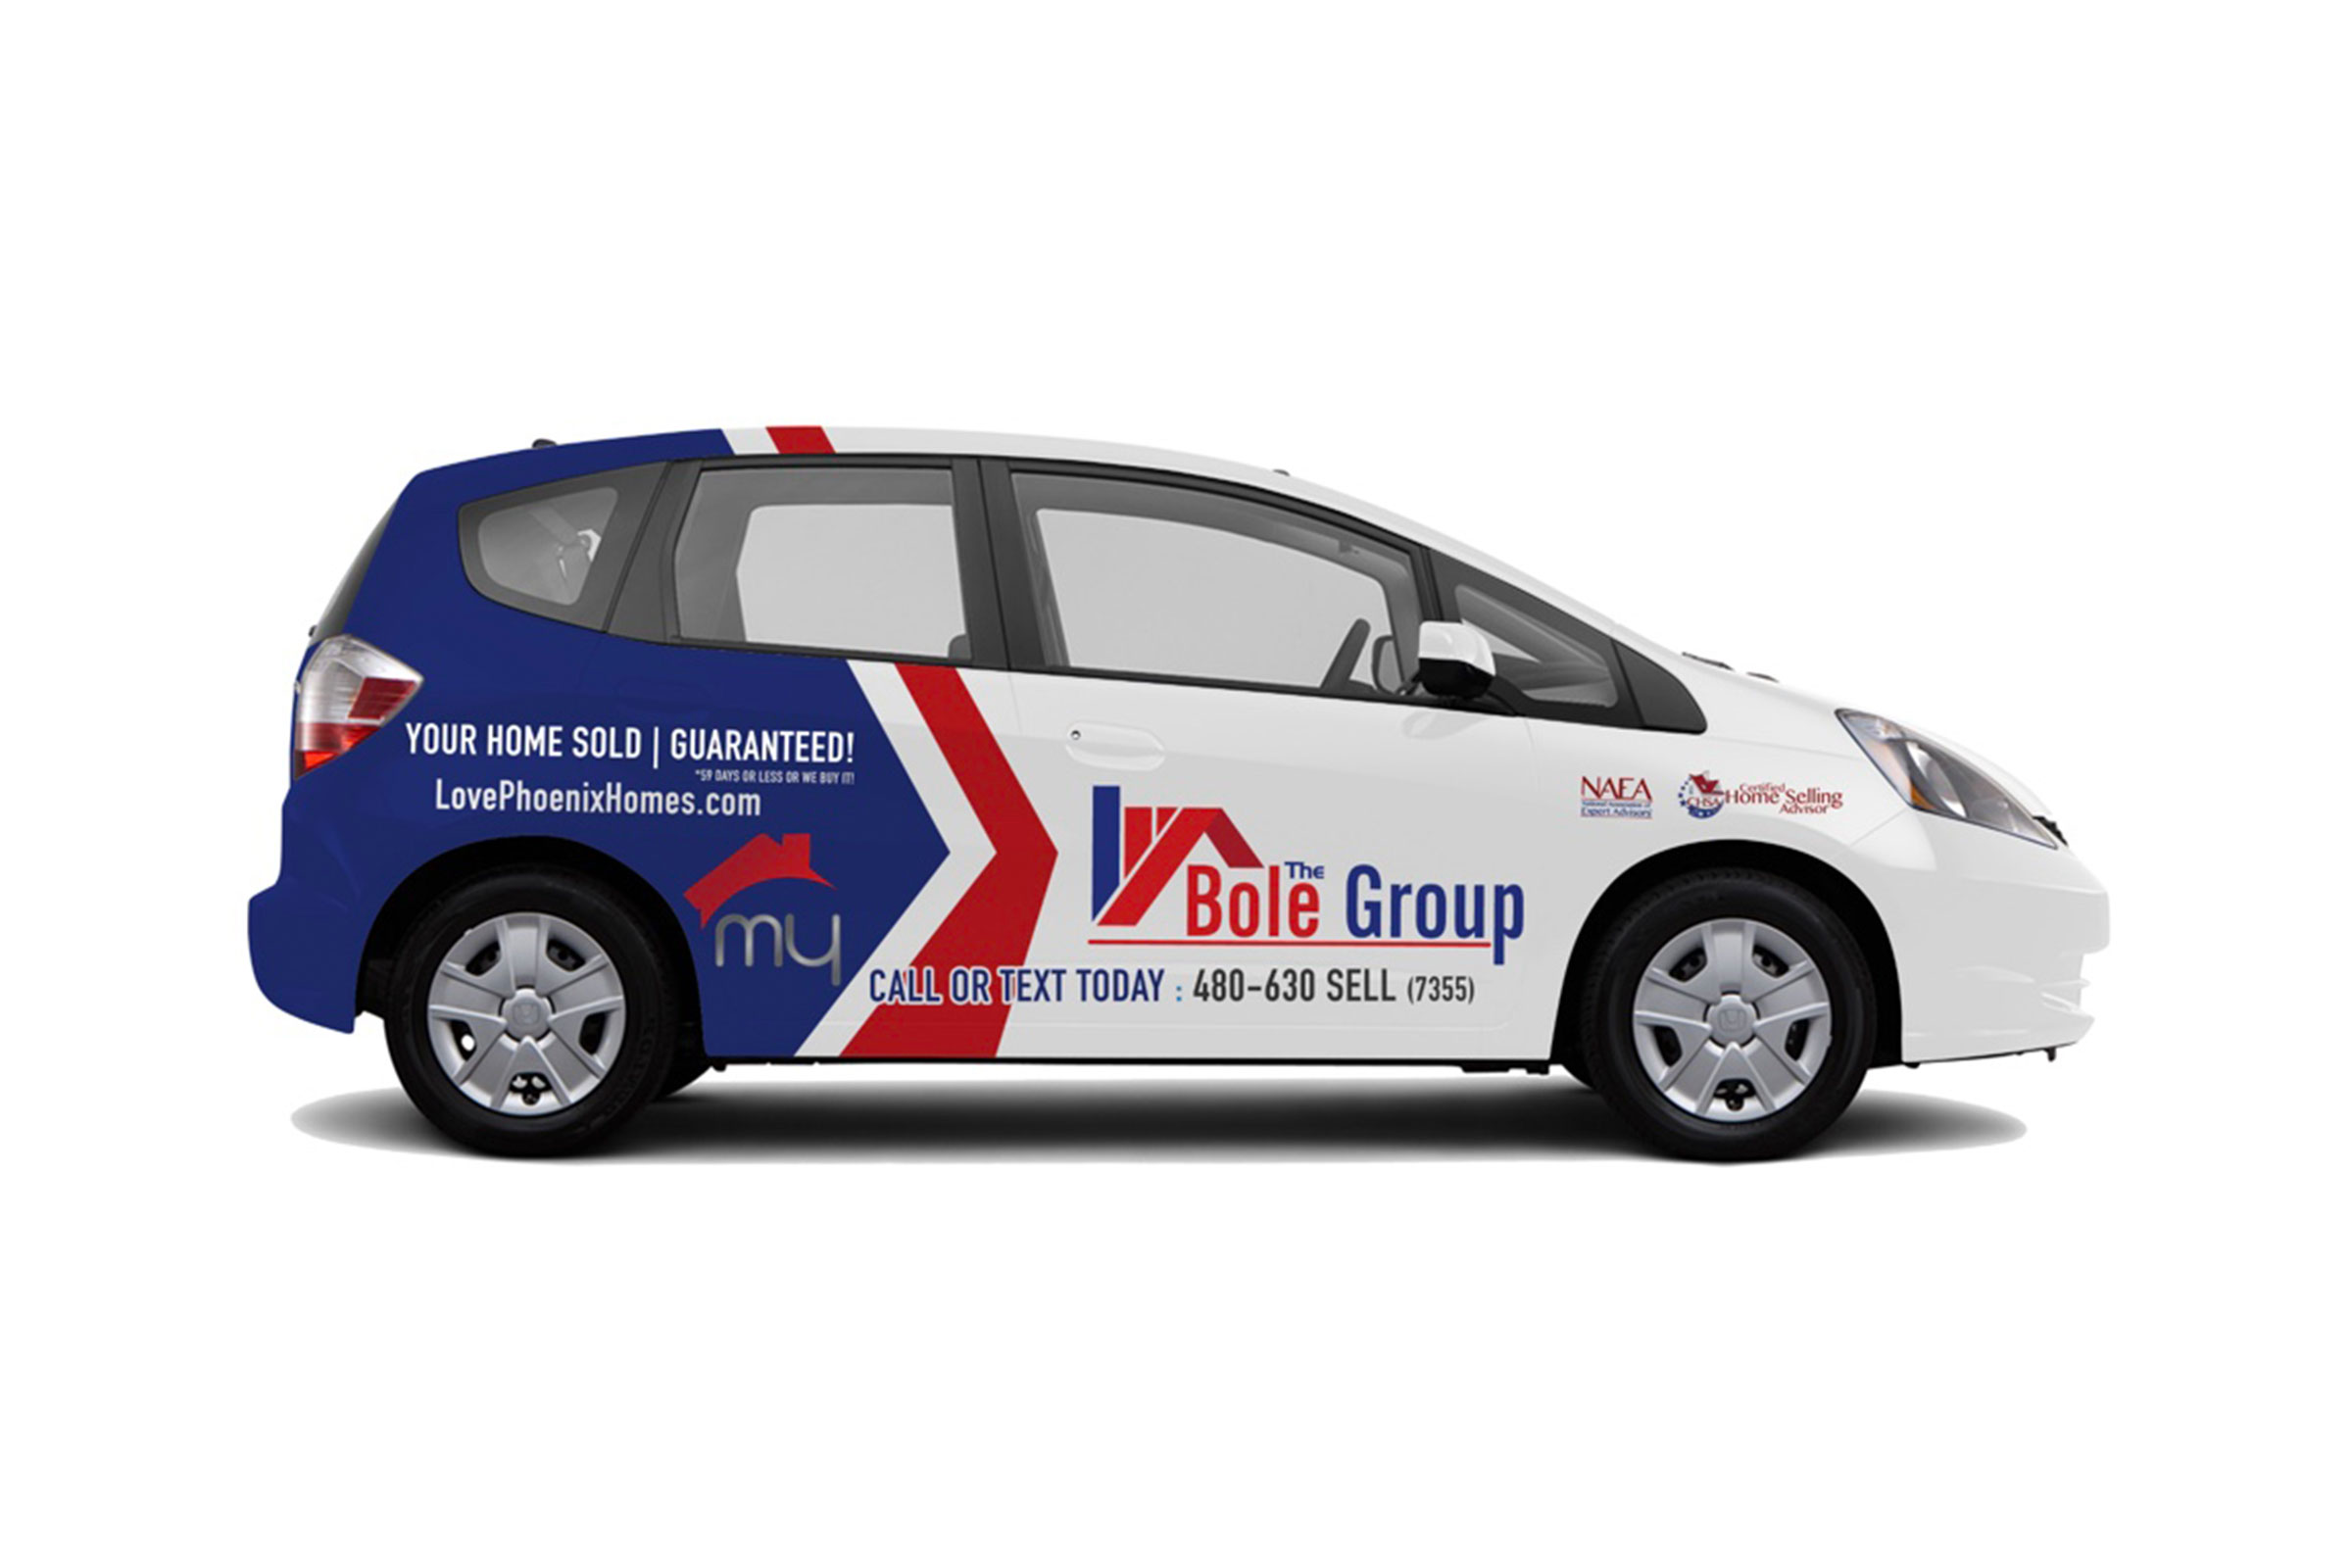 Vehicle wrap project for The Bole Group